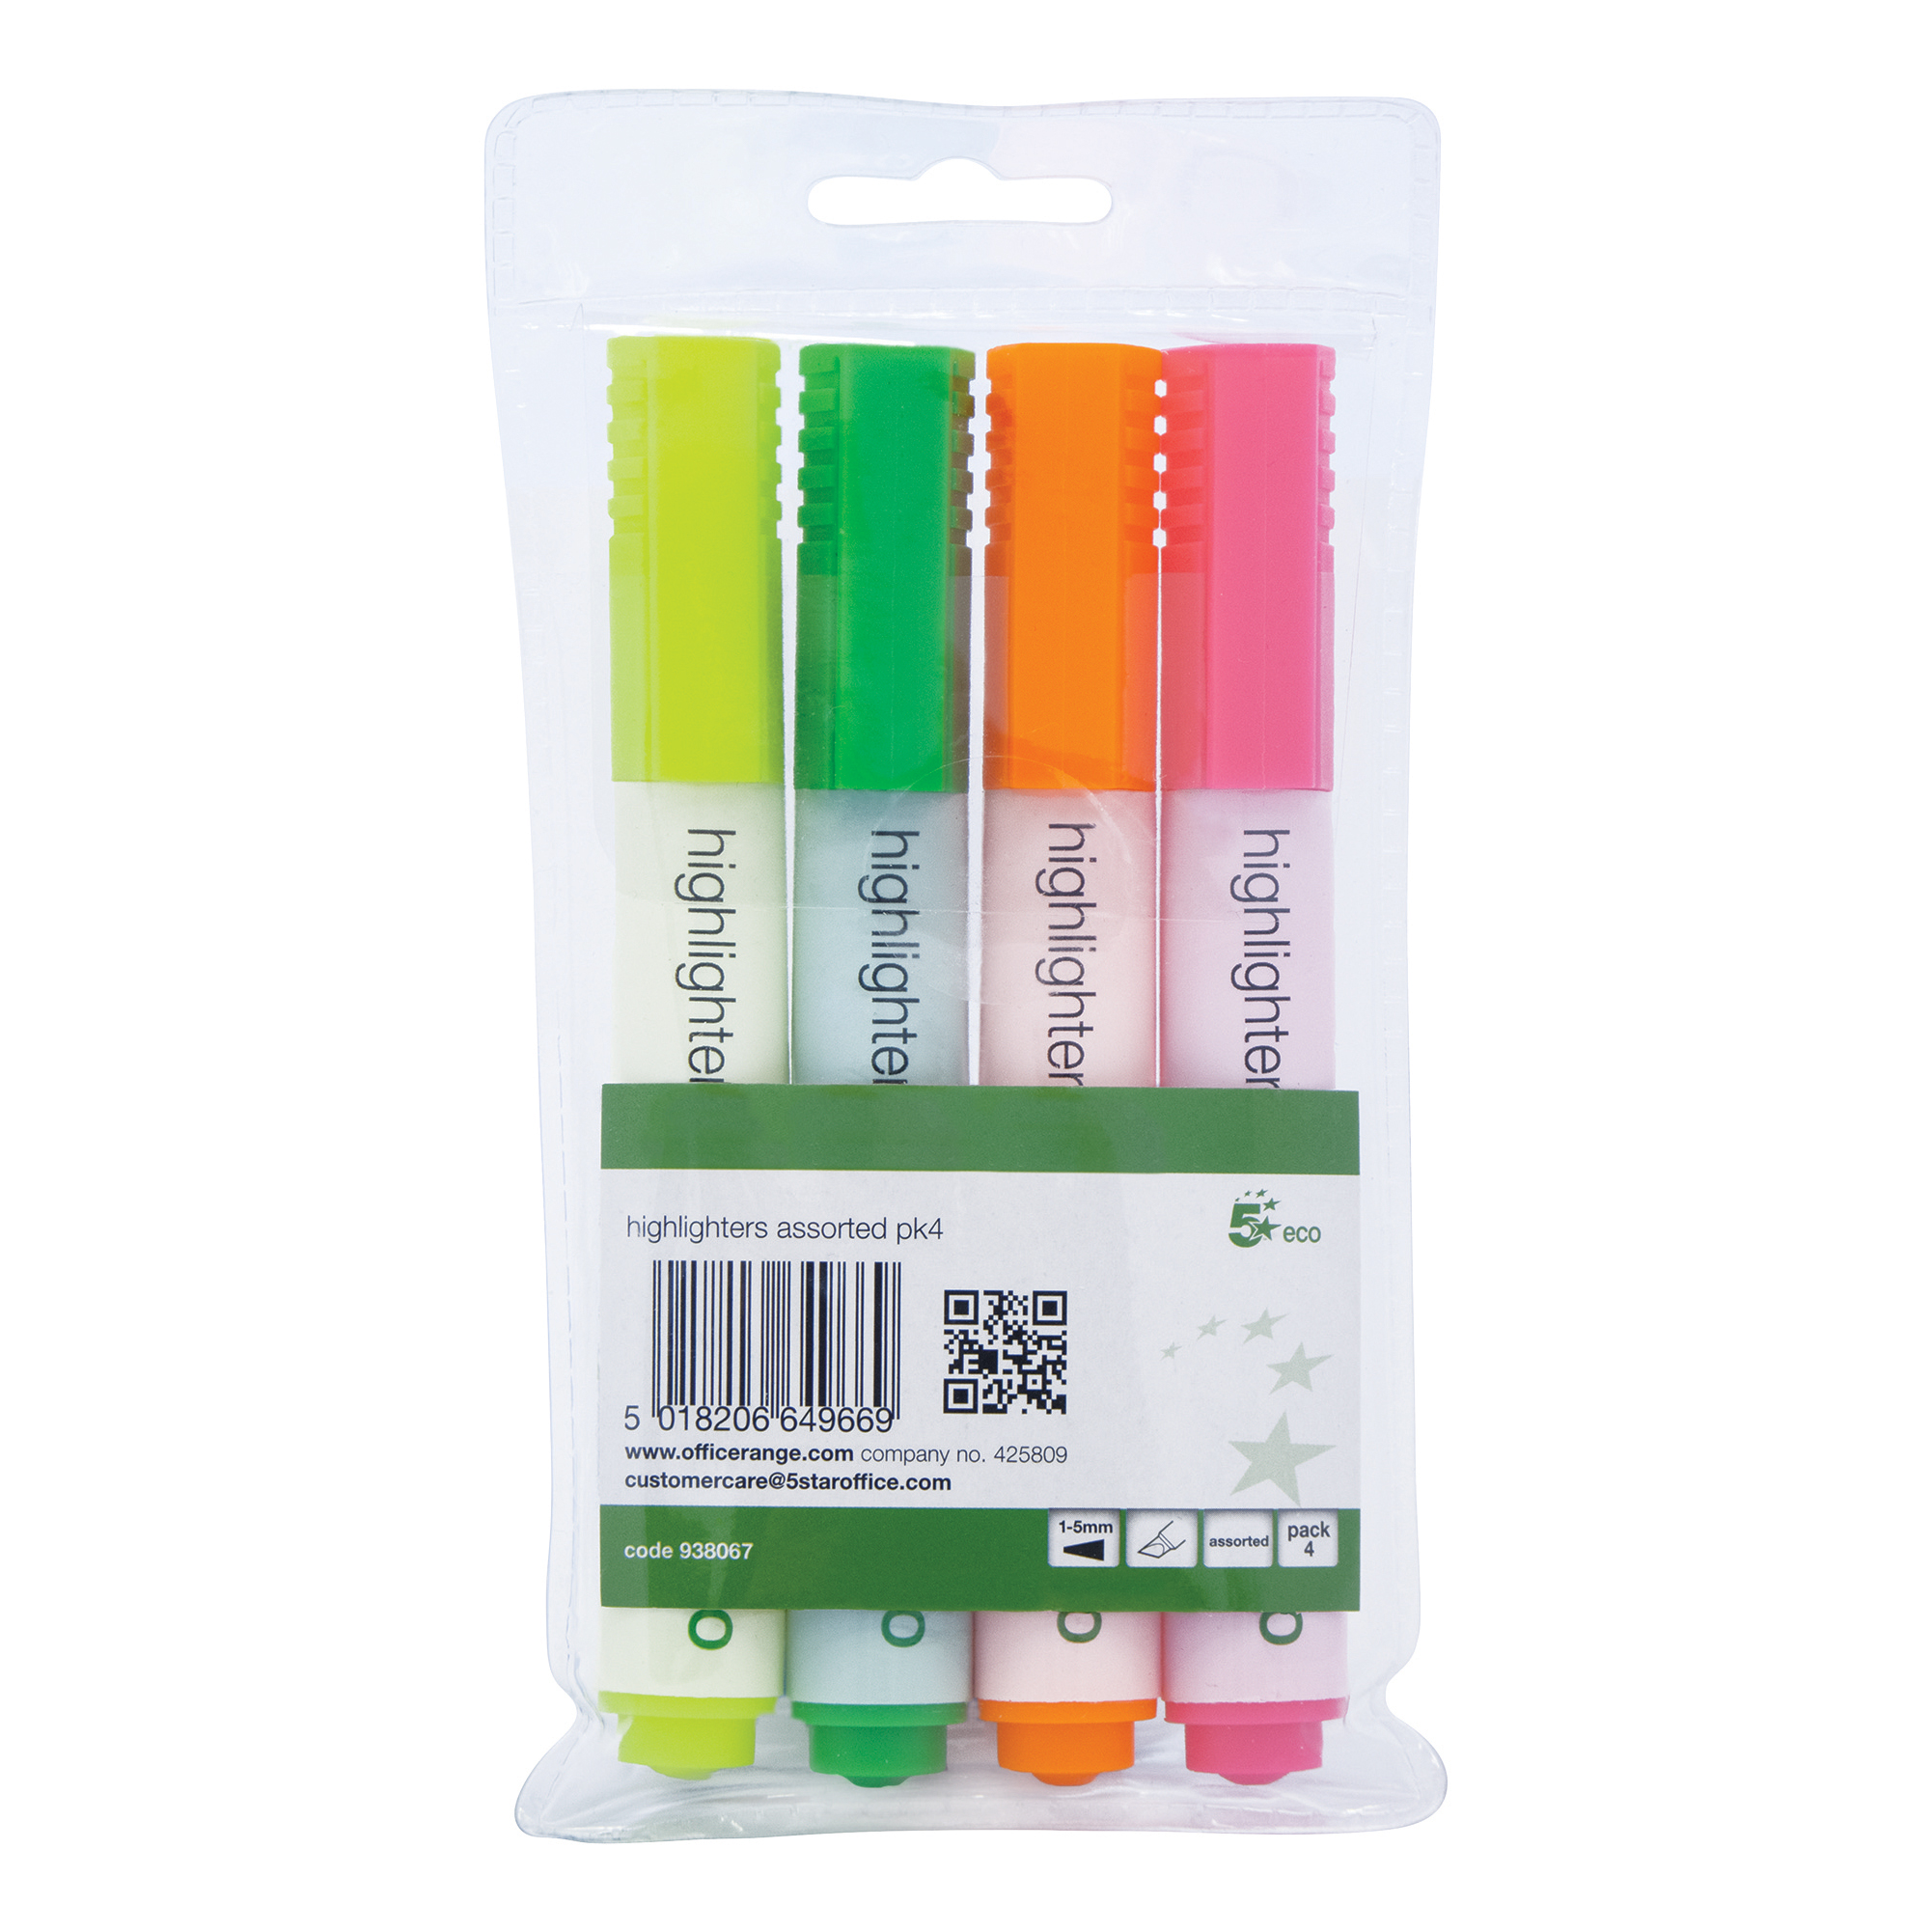 5 Star Eco Highlighter Chisel Tip 1-5mm Line Wallet Assorted Pack 4